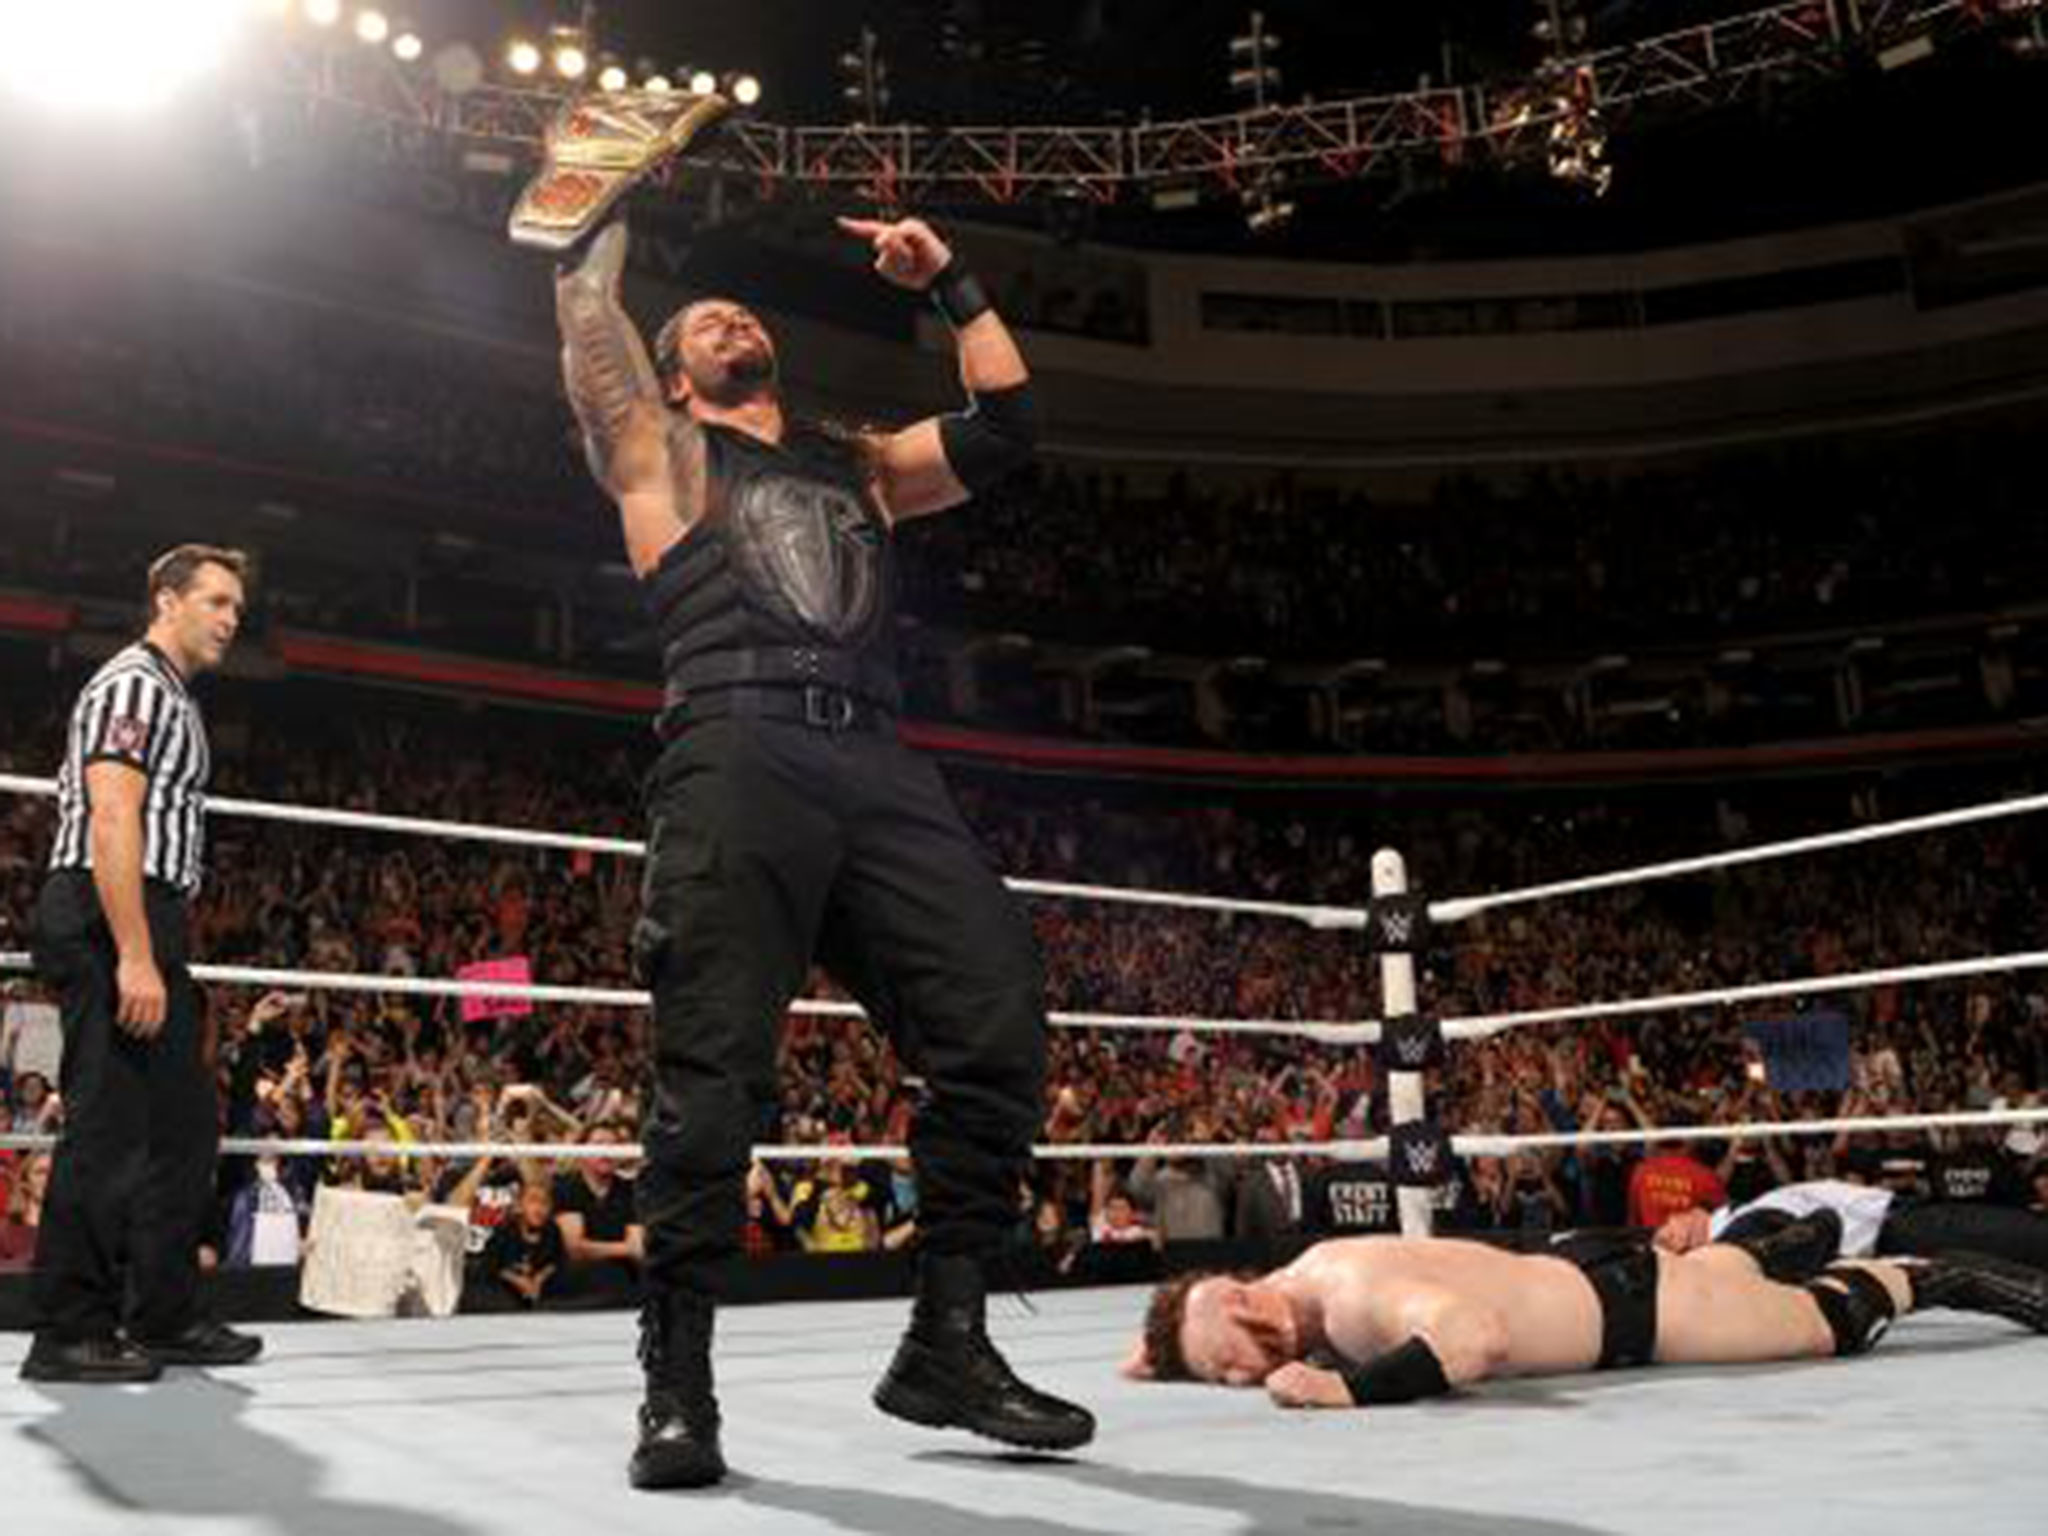 WWE Raw results: Roman Reigns wins WWE title from Sheamus a day after TLC  loss despite Vince McMahon return | The Independent